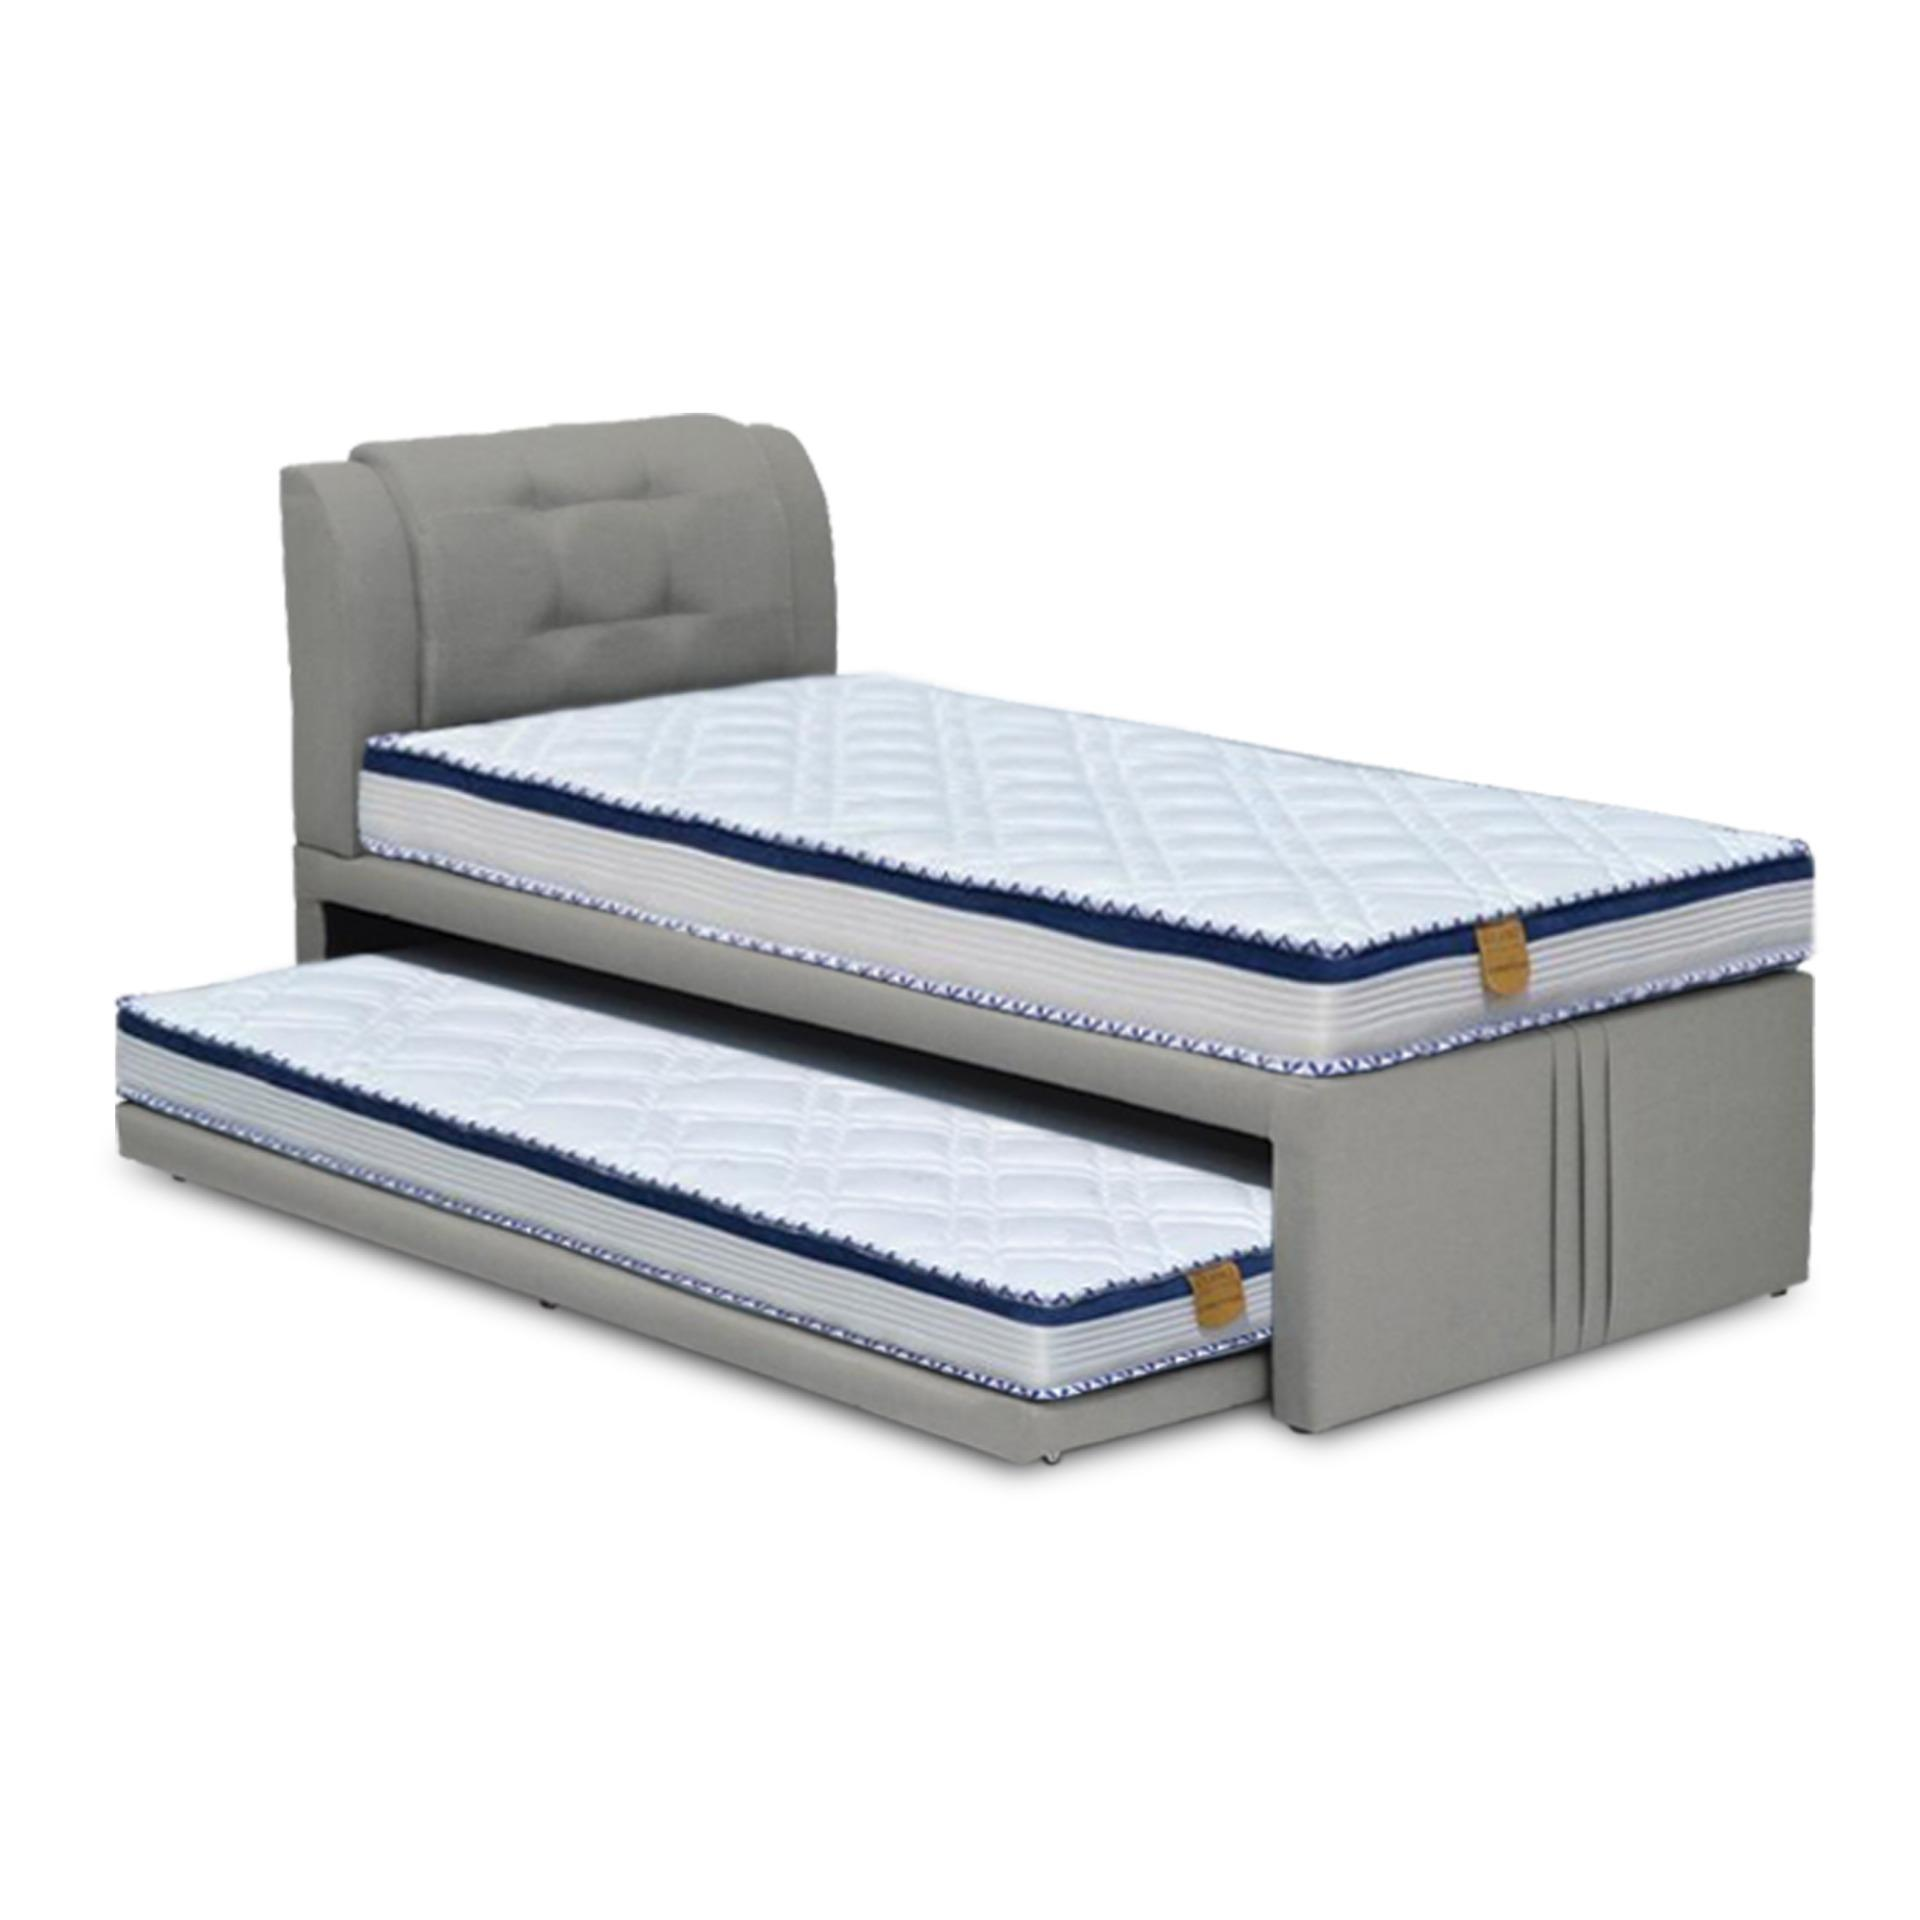 Loris 3-in-1 Bed (Top Super Single, Bottom Single)(FREE DELIVERY)(FREE ASSEMBLY)